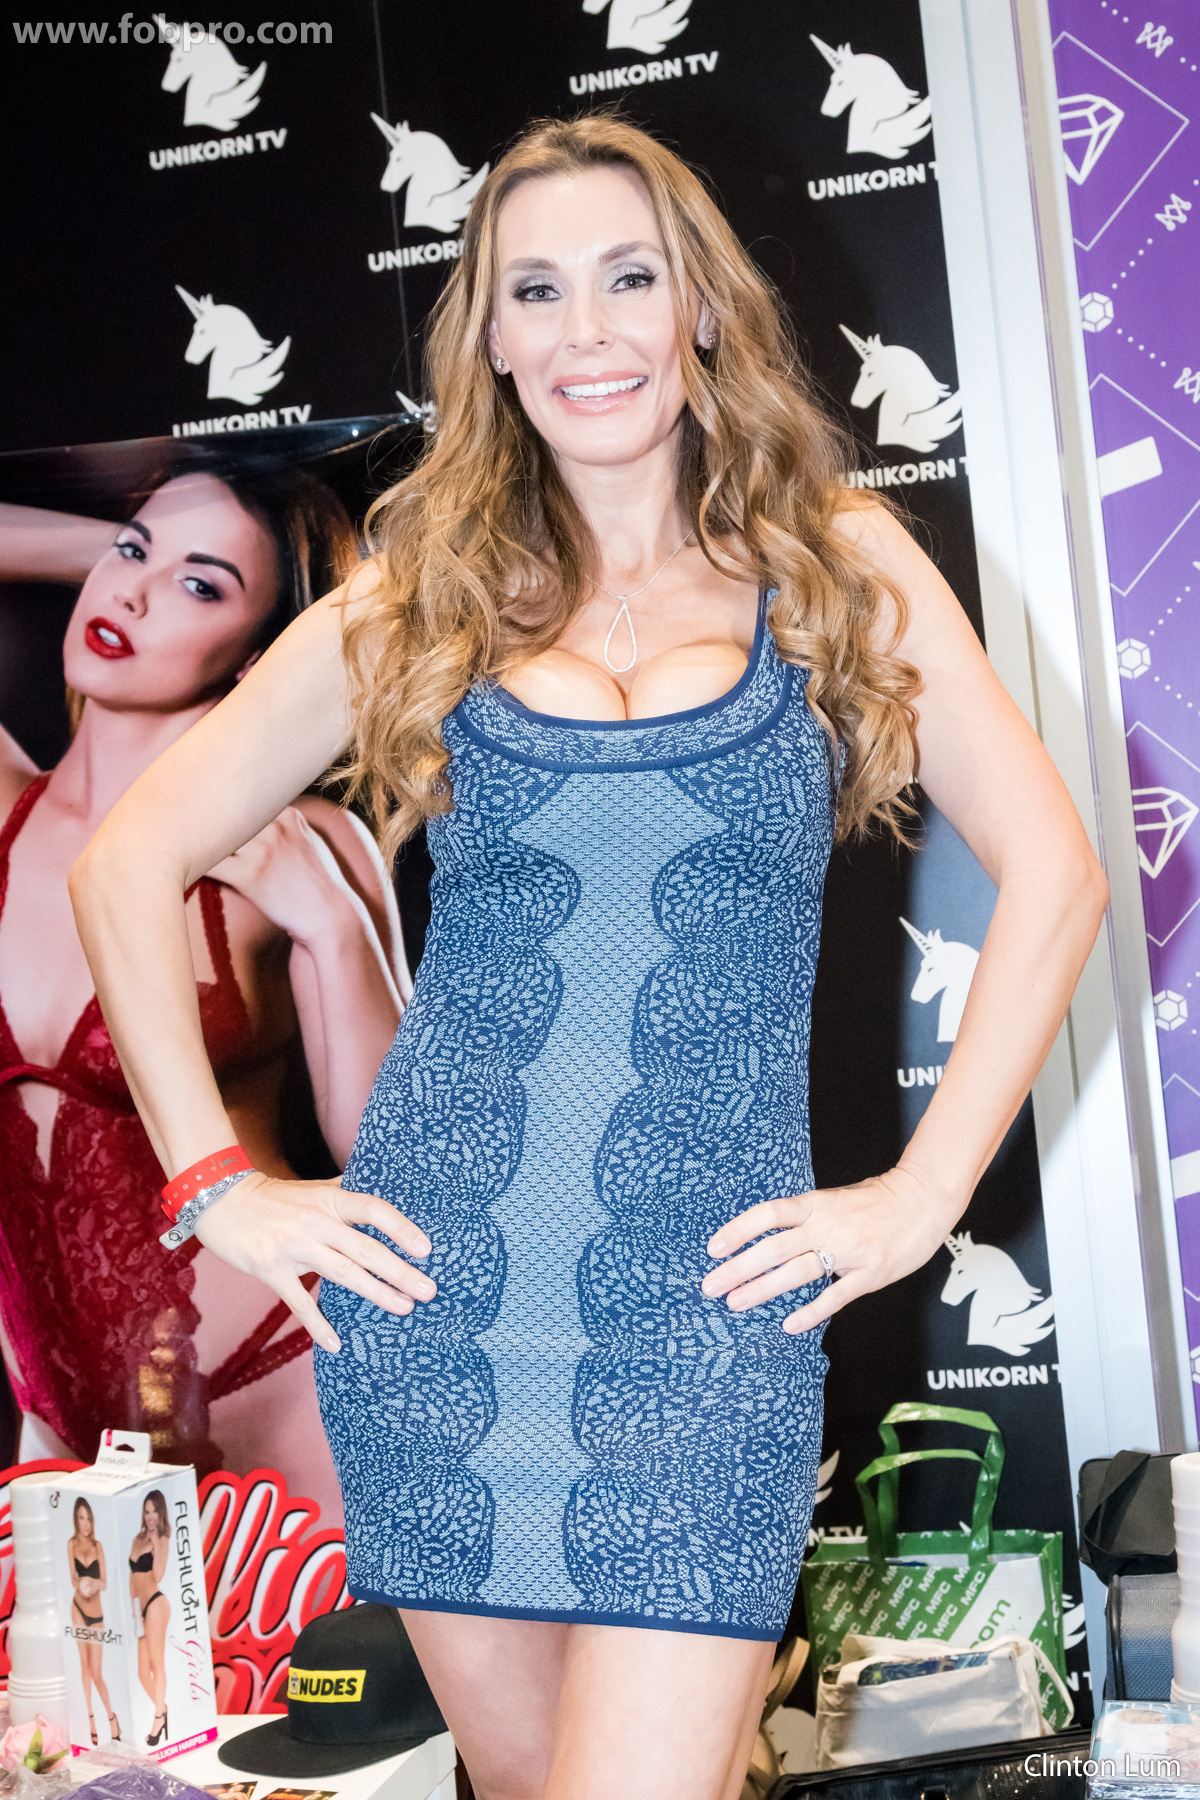 AVN Adult Entertainment Expo 2019 Day 3 (Page 7 of 26